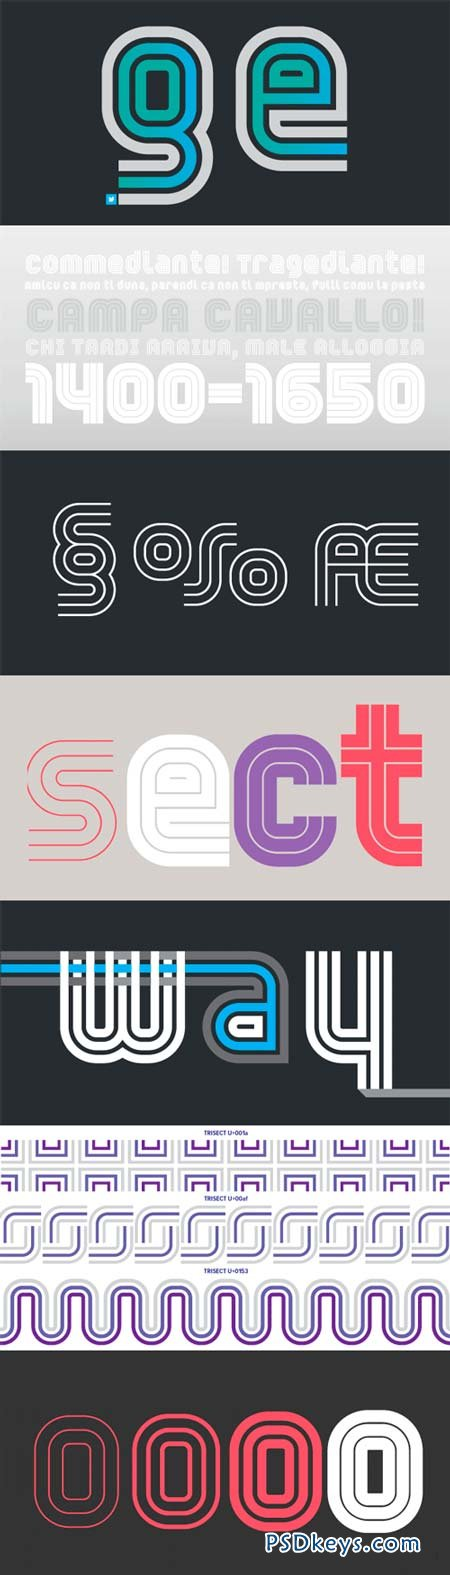 YWFT Trisect Font Family - 8 Fonts for $100